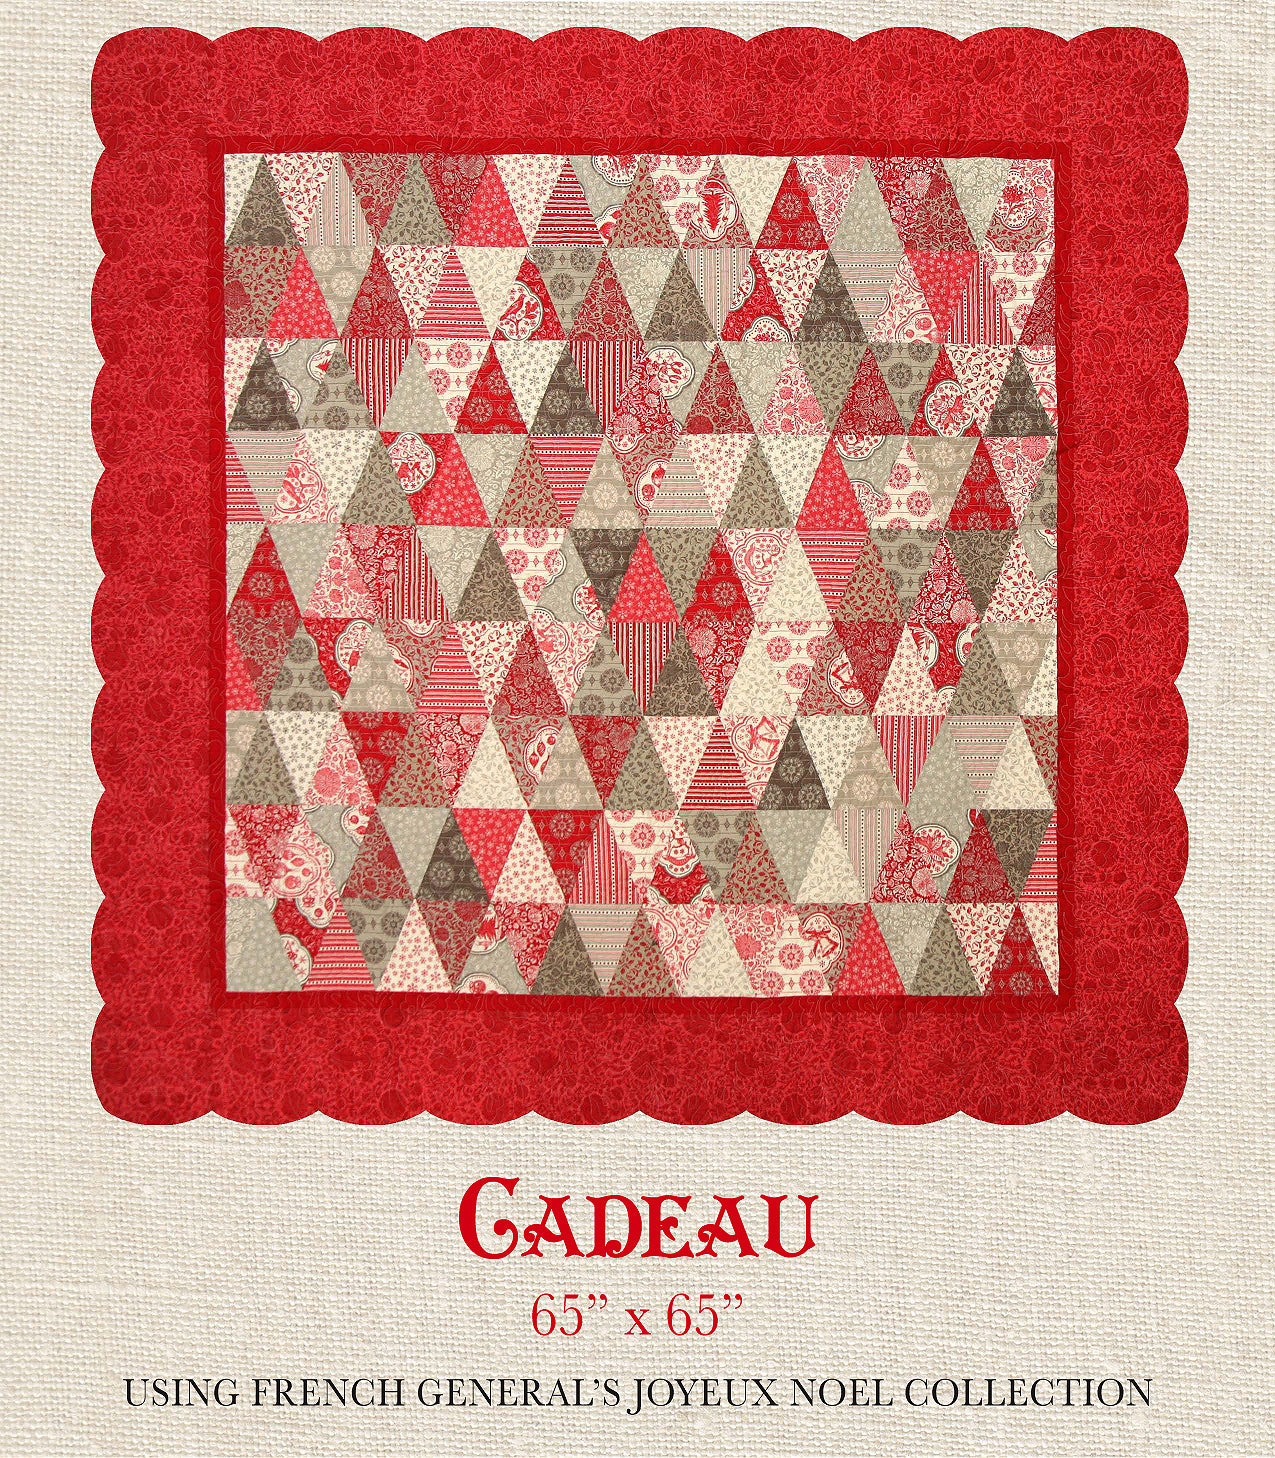 Joyeux Noel Cadeau Quilt Pattern French General